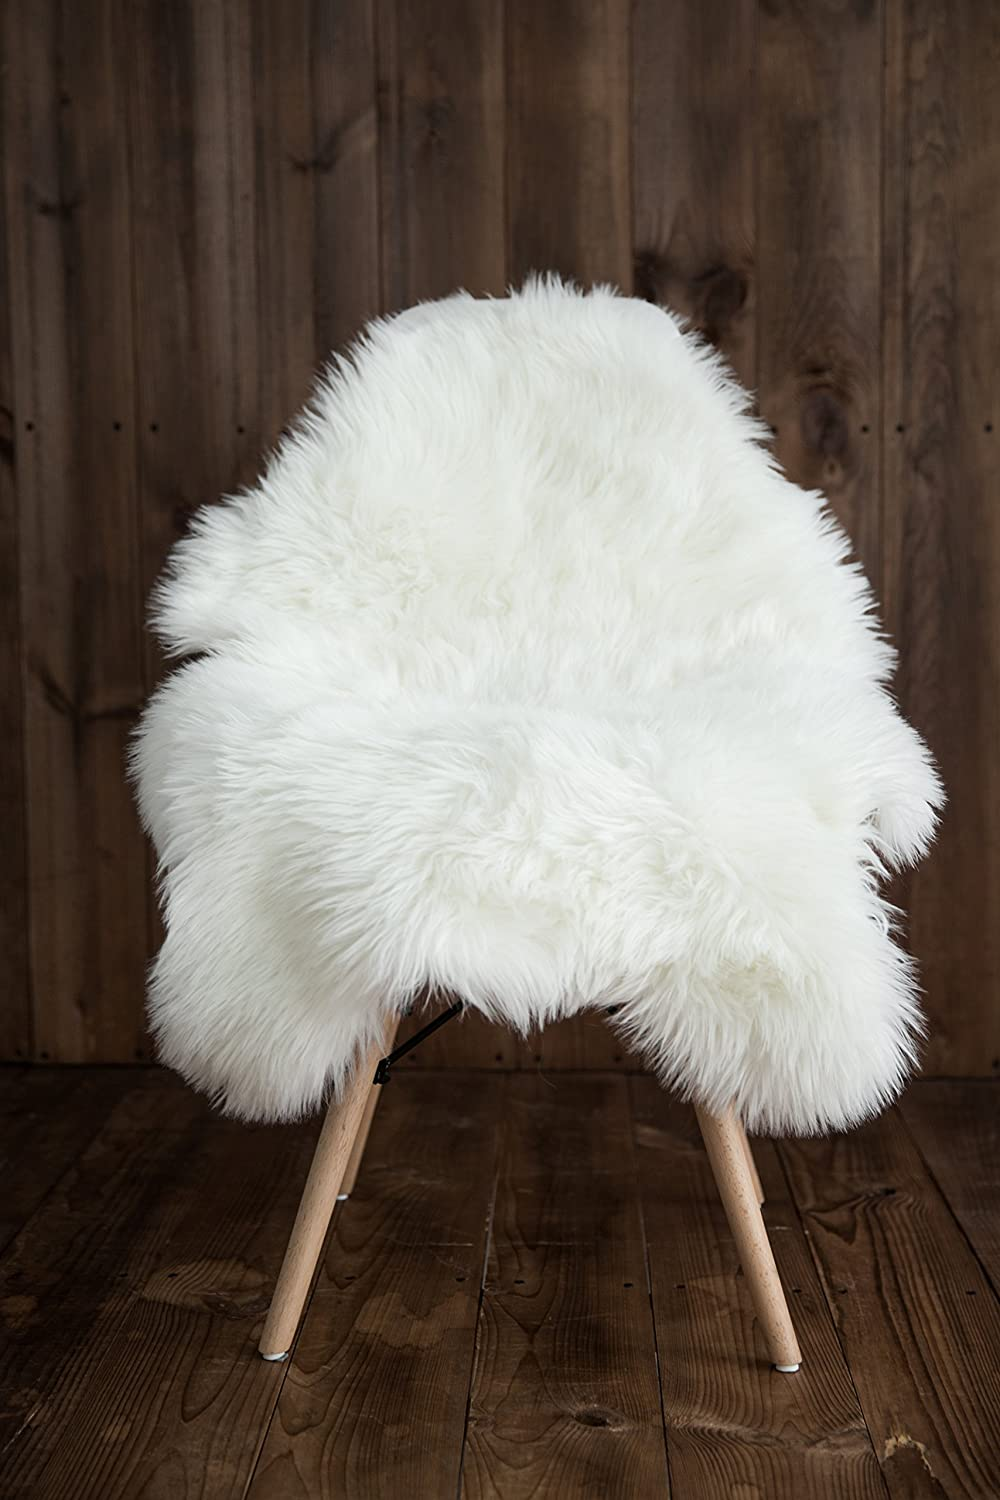 Pleasant My Comfy Zone Sheepskin Faux Fur Chair Cover Rug Seat Pad Area Rugs For Bedroom Sofa Floor Vanity Nursery Decor Ivory And White 2Ft X 3Ft White Machost Co Dining Chair Design Ideas Machostcouk